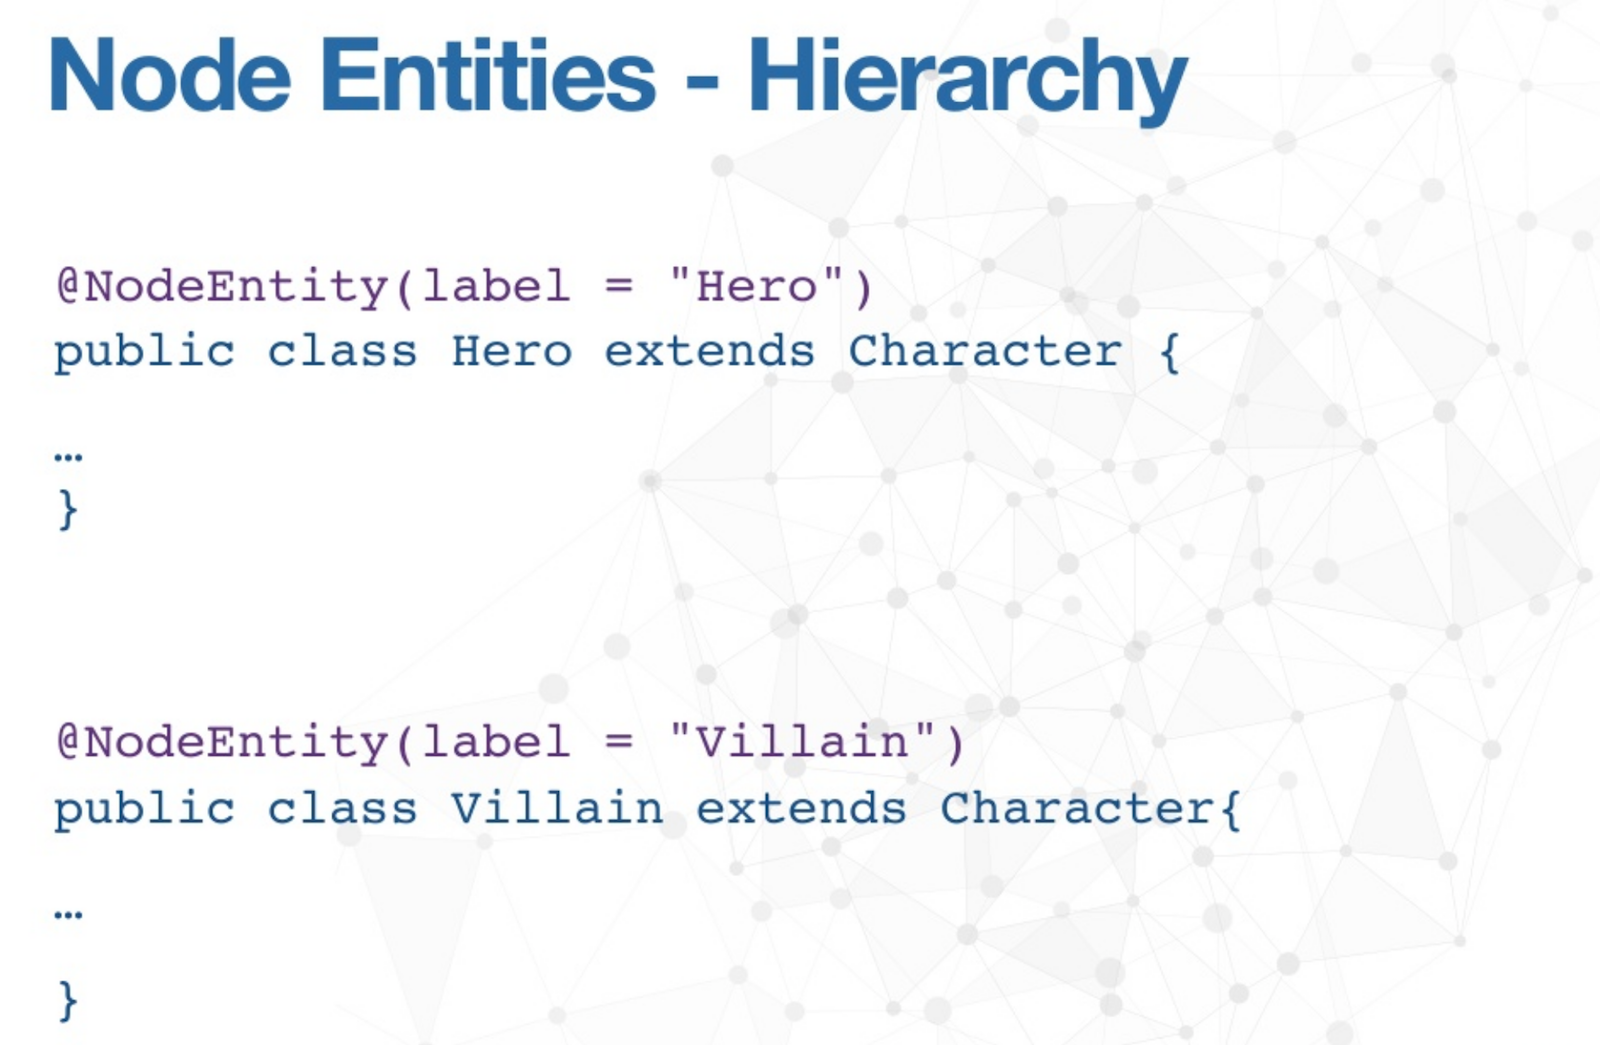 The Node Entities of the Hierarchy from our Spring Data Neo4j Example Application